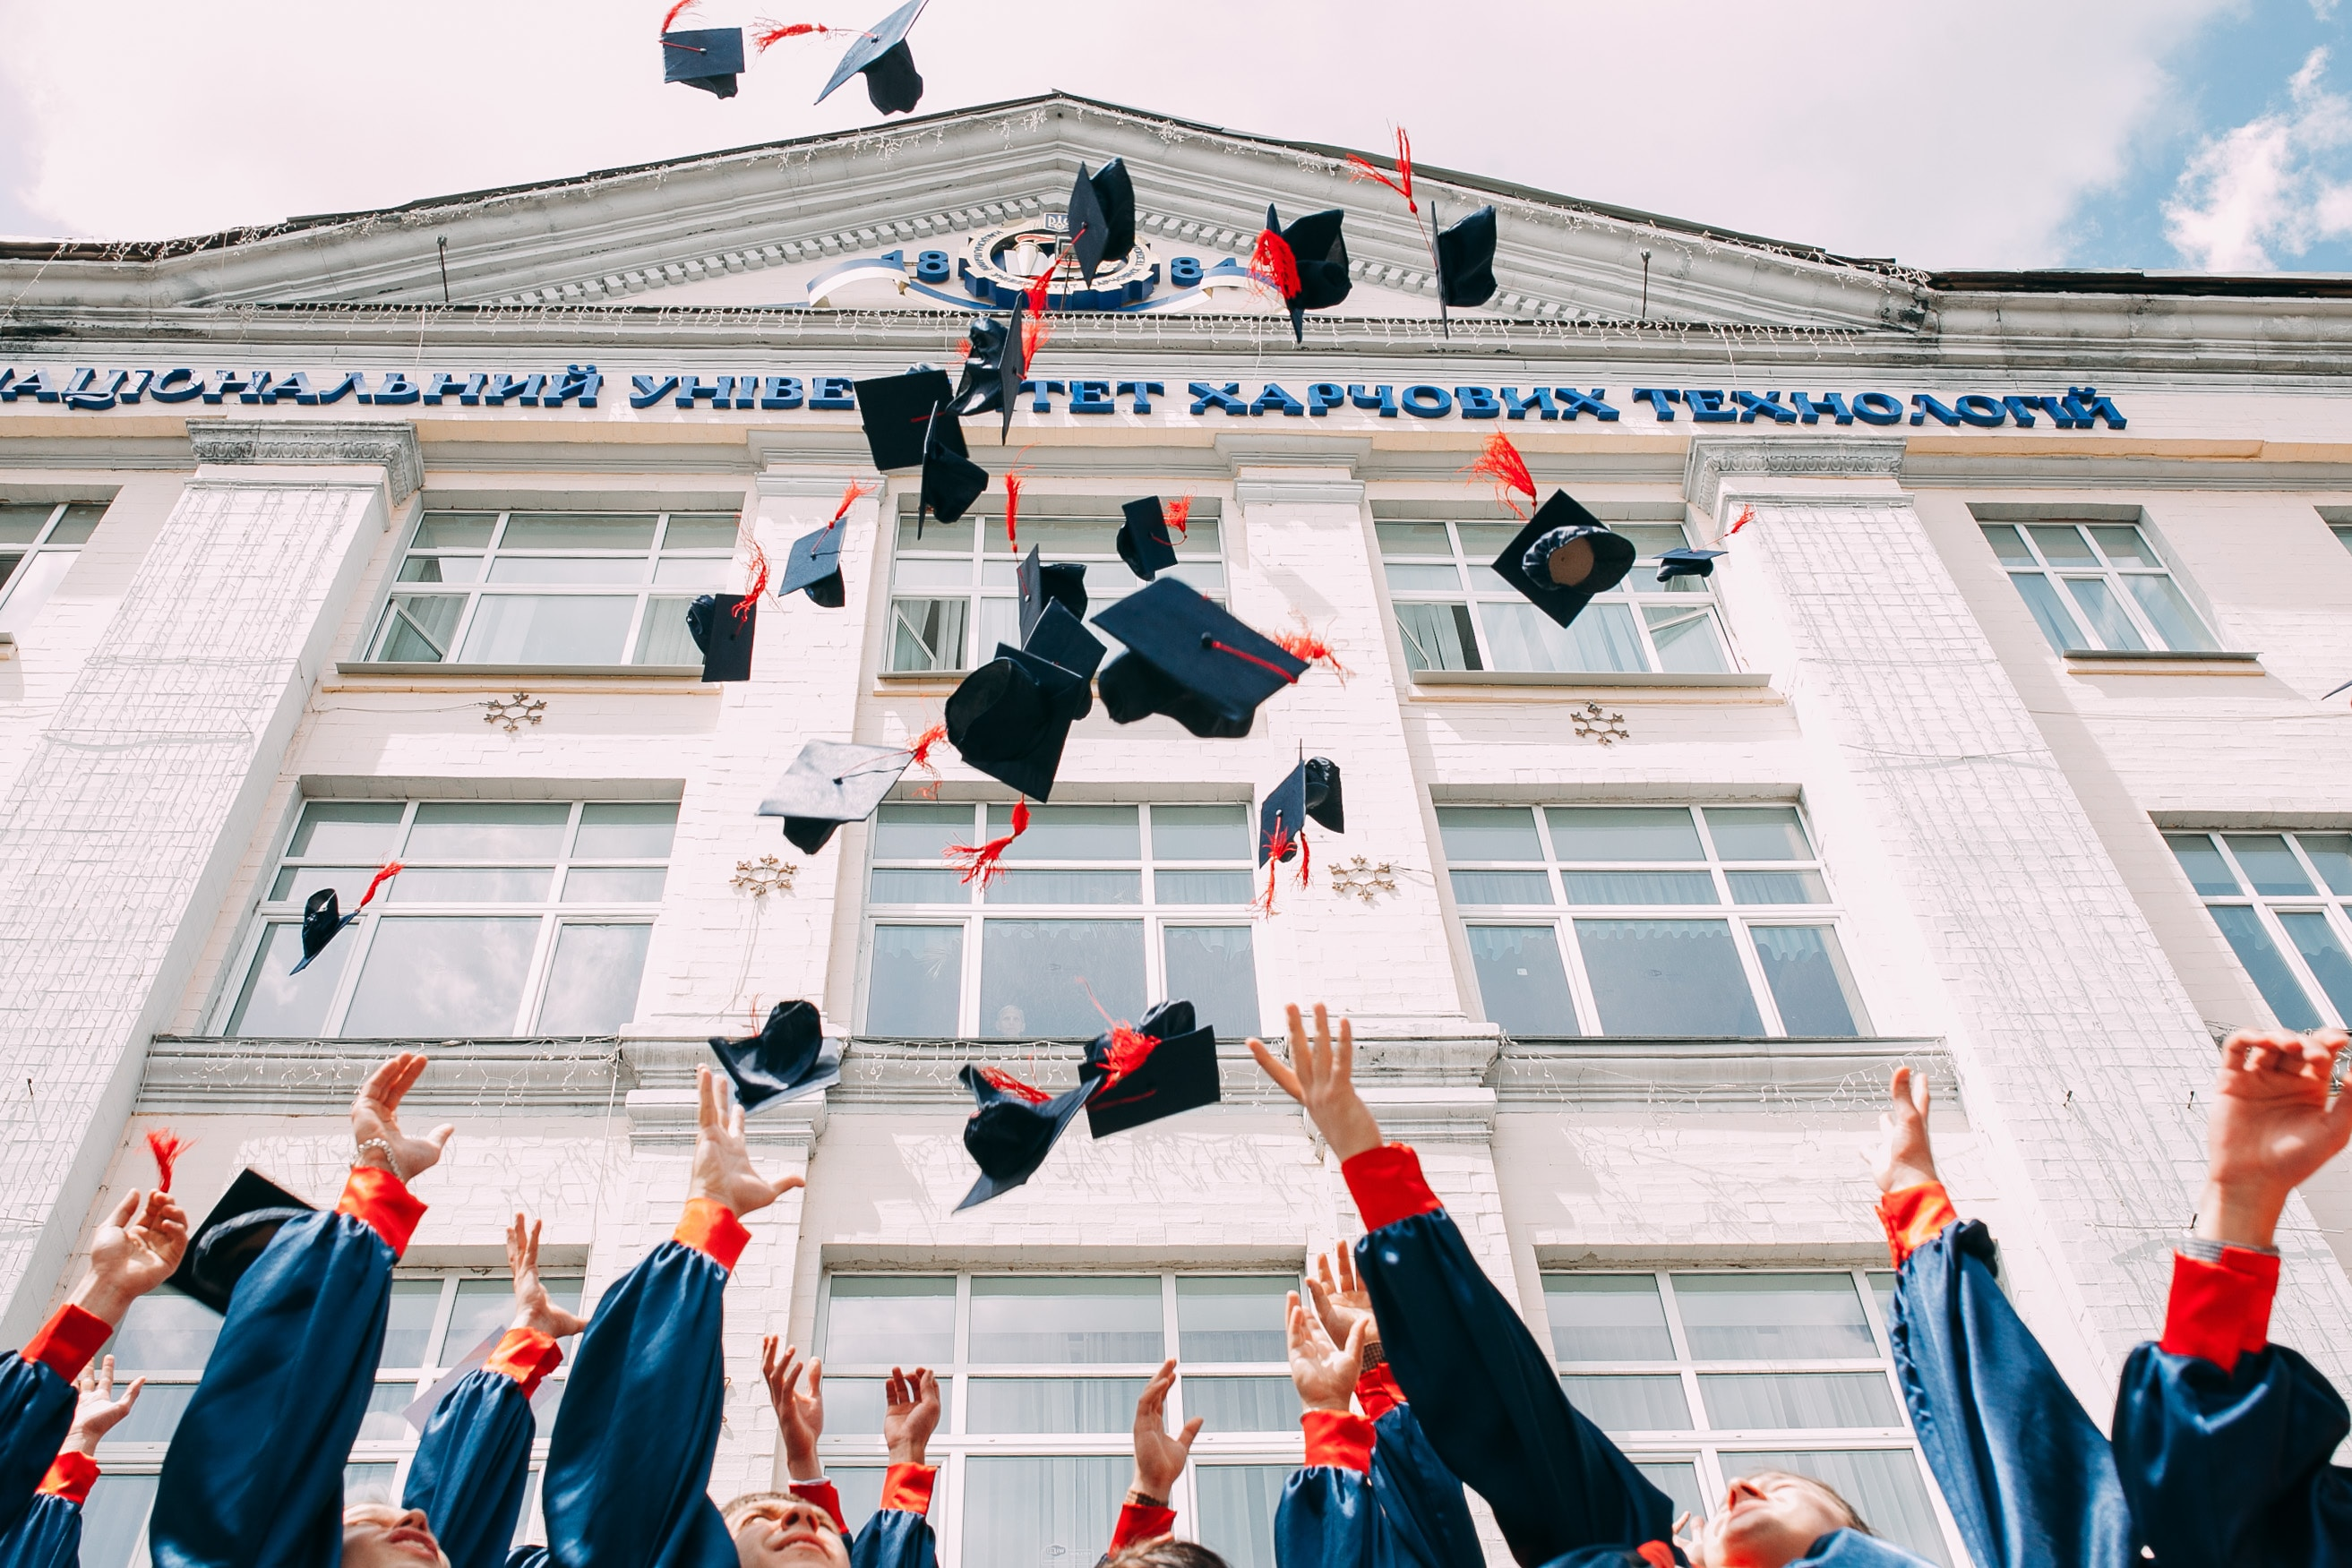 Students throwing mortarboards in the air